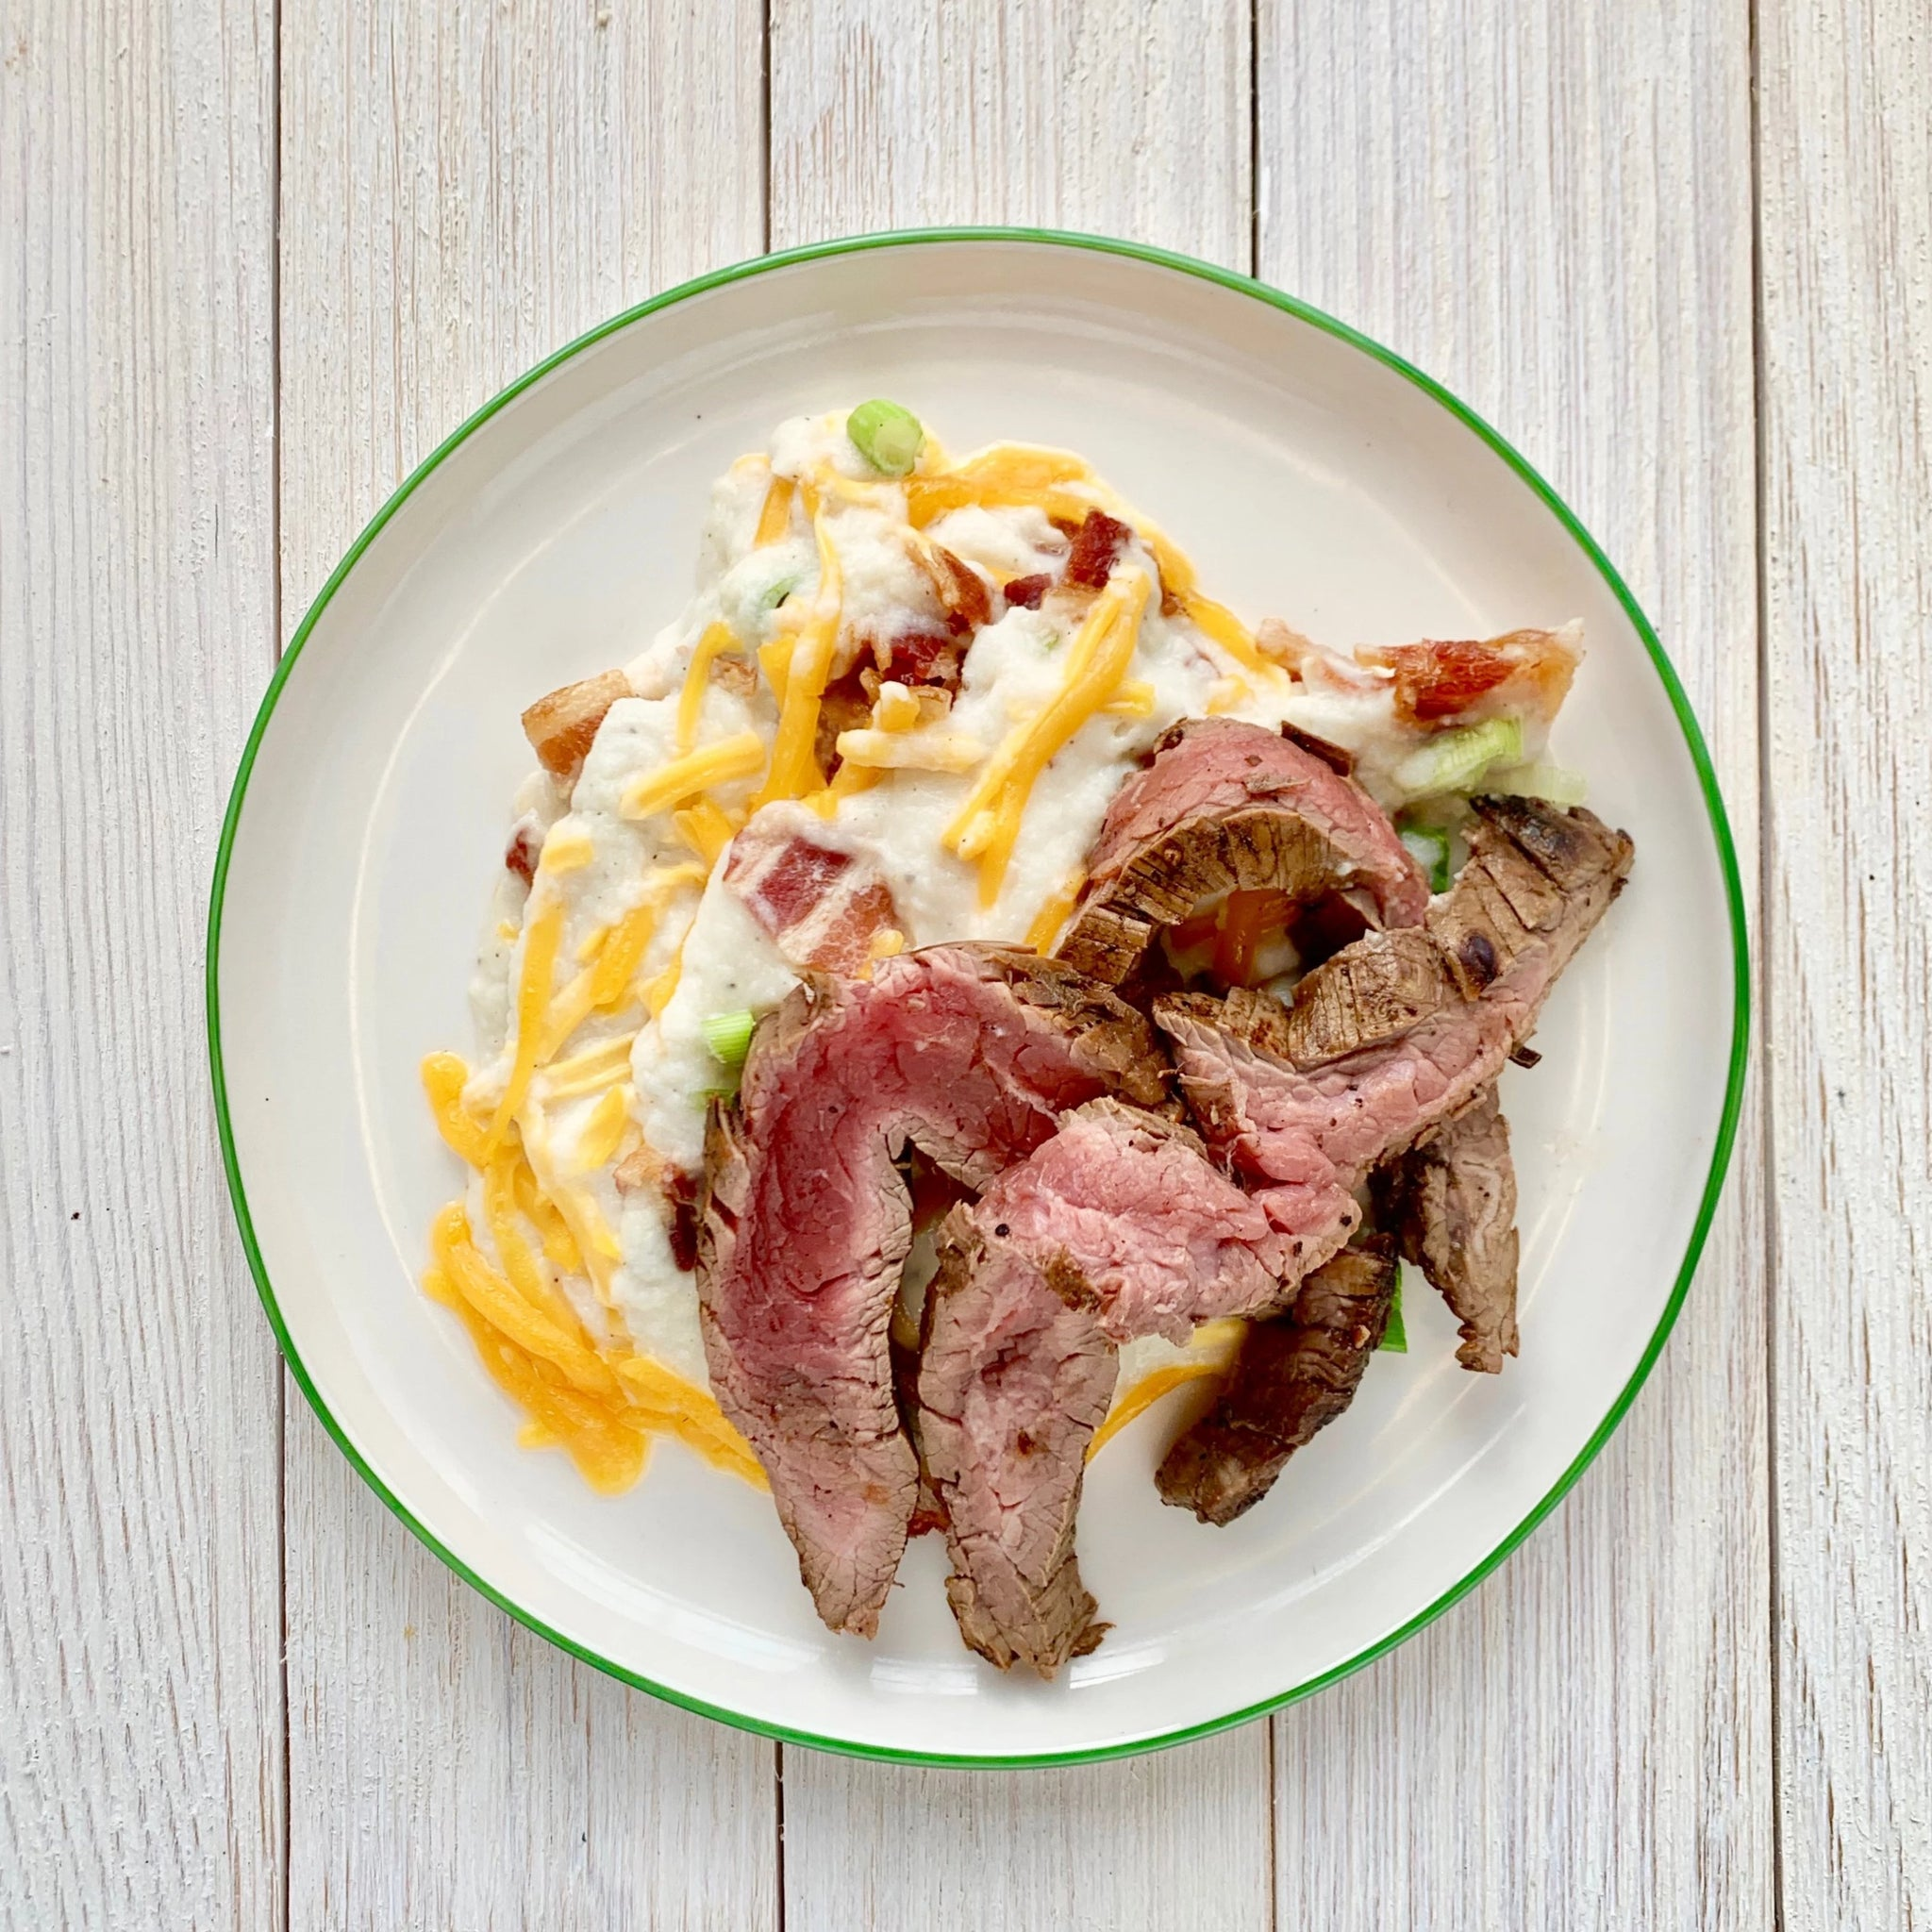 Marinated Flank Steak over Loaded Mashed Cauliflower